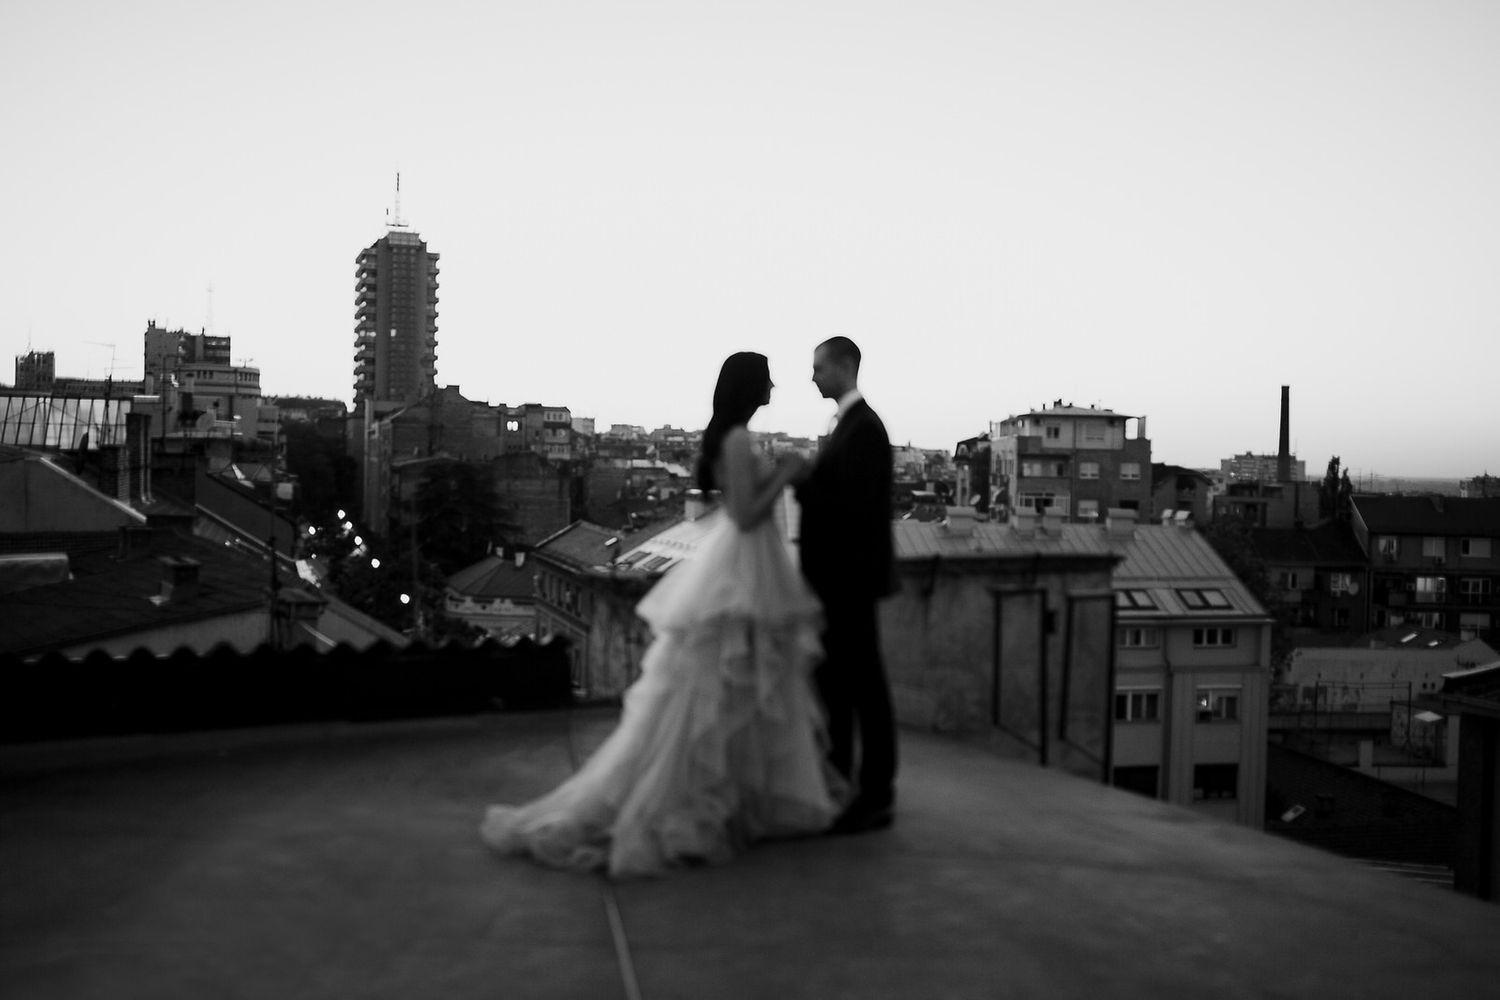 Bride and groom on a rooftop